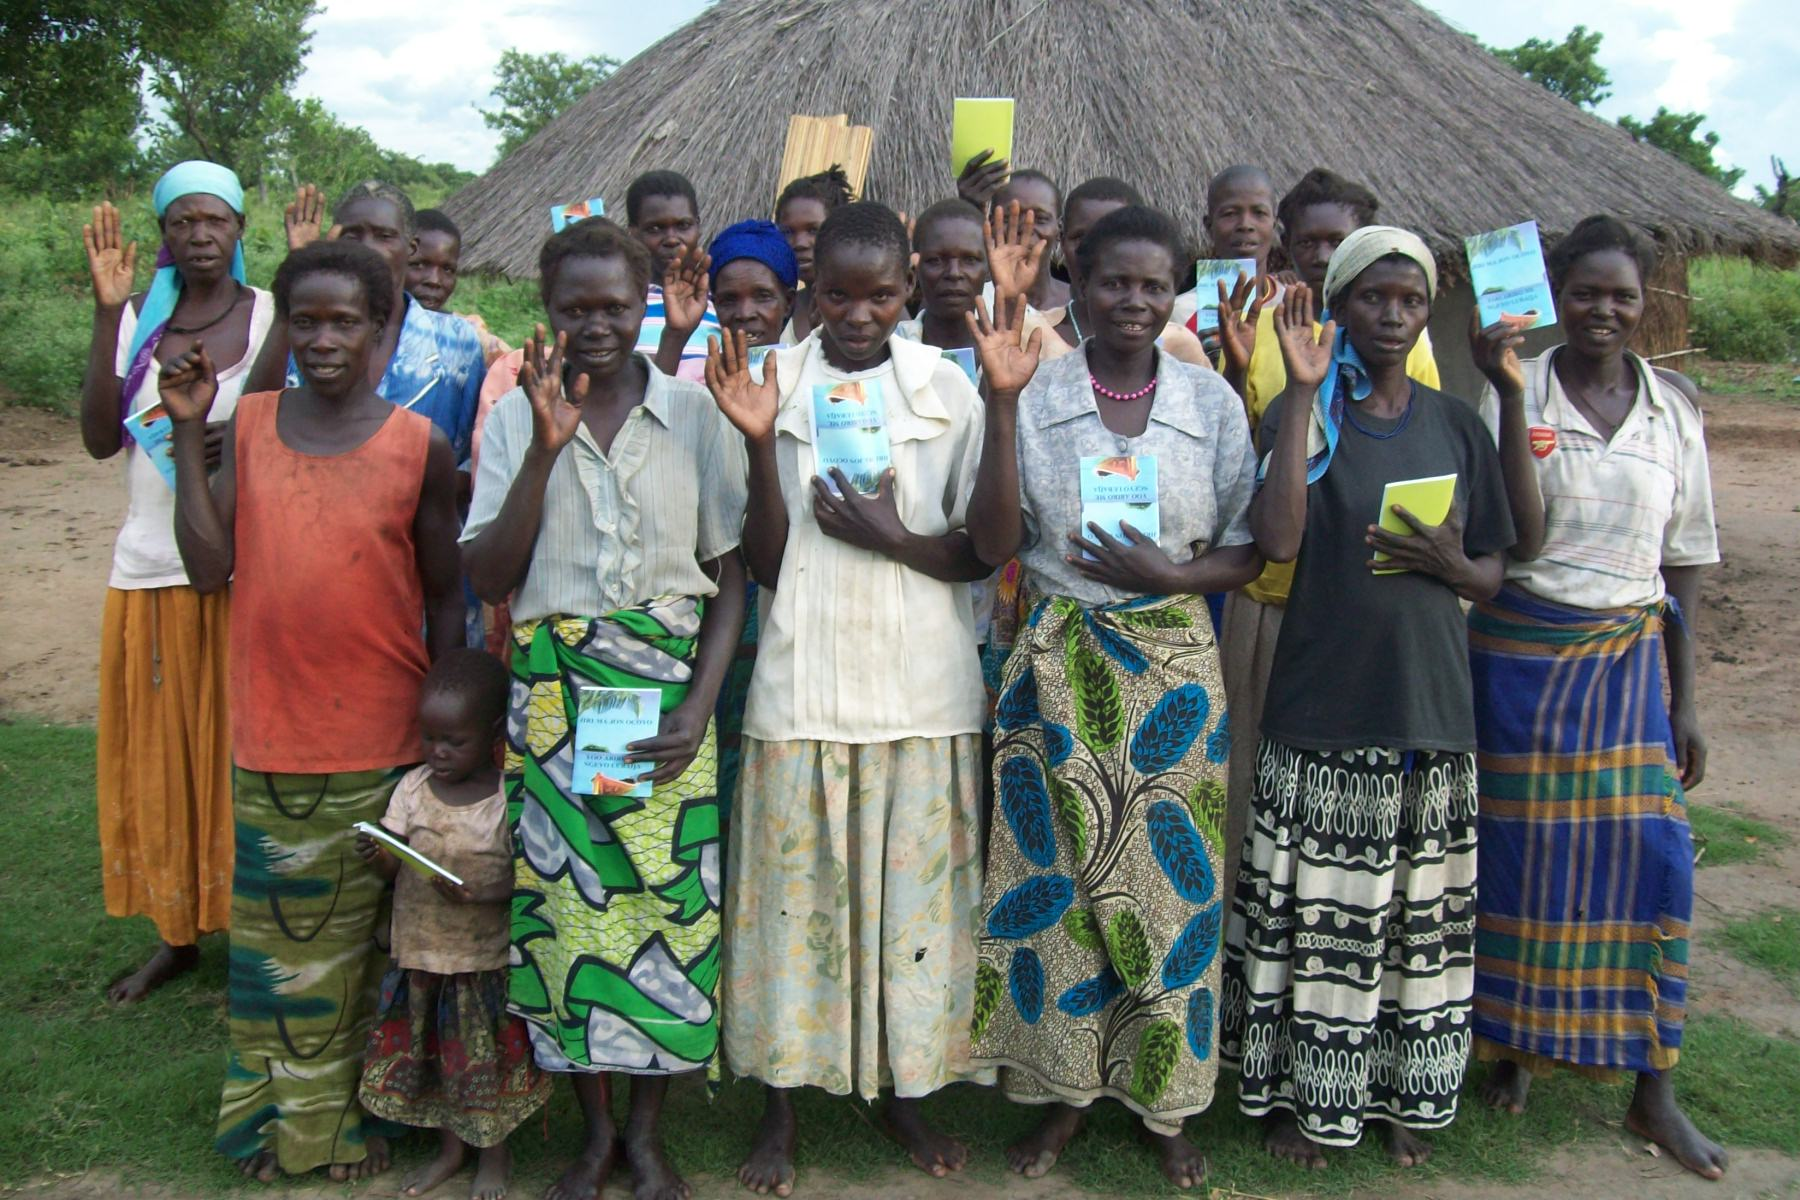 Women's group learning to live positively with AIDS